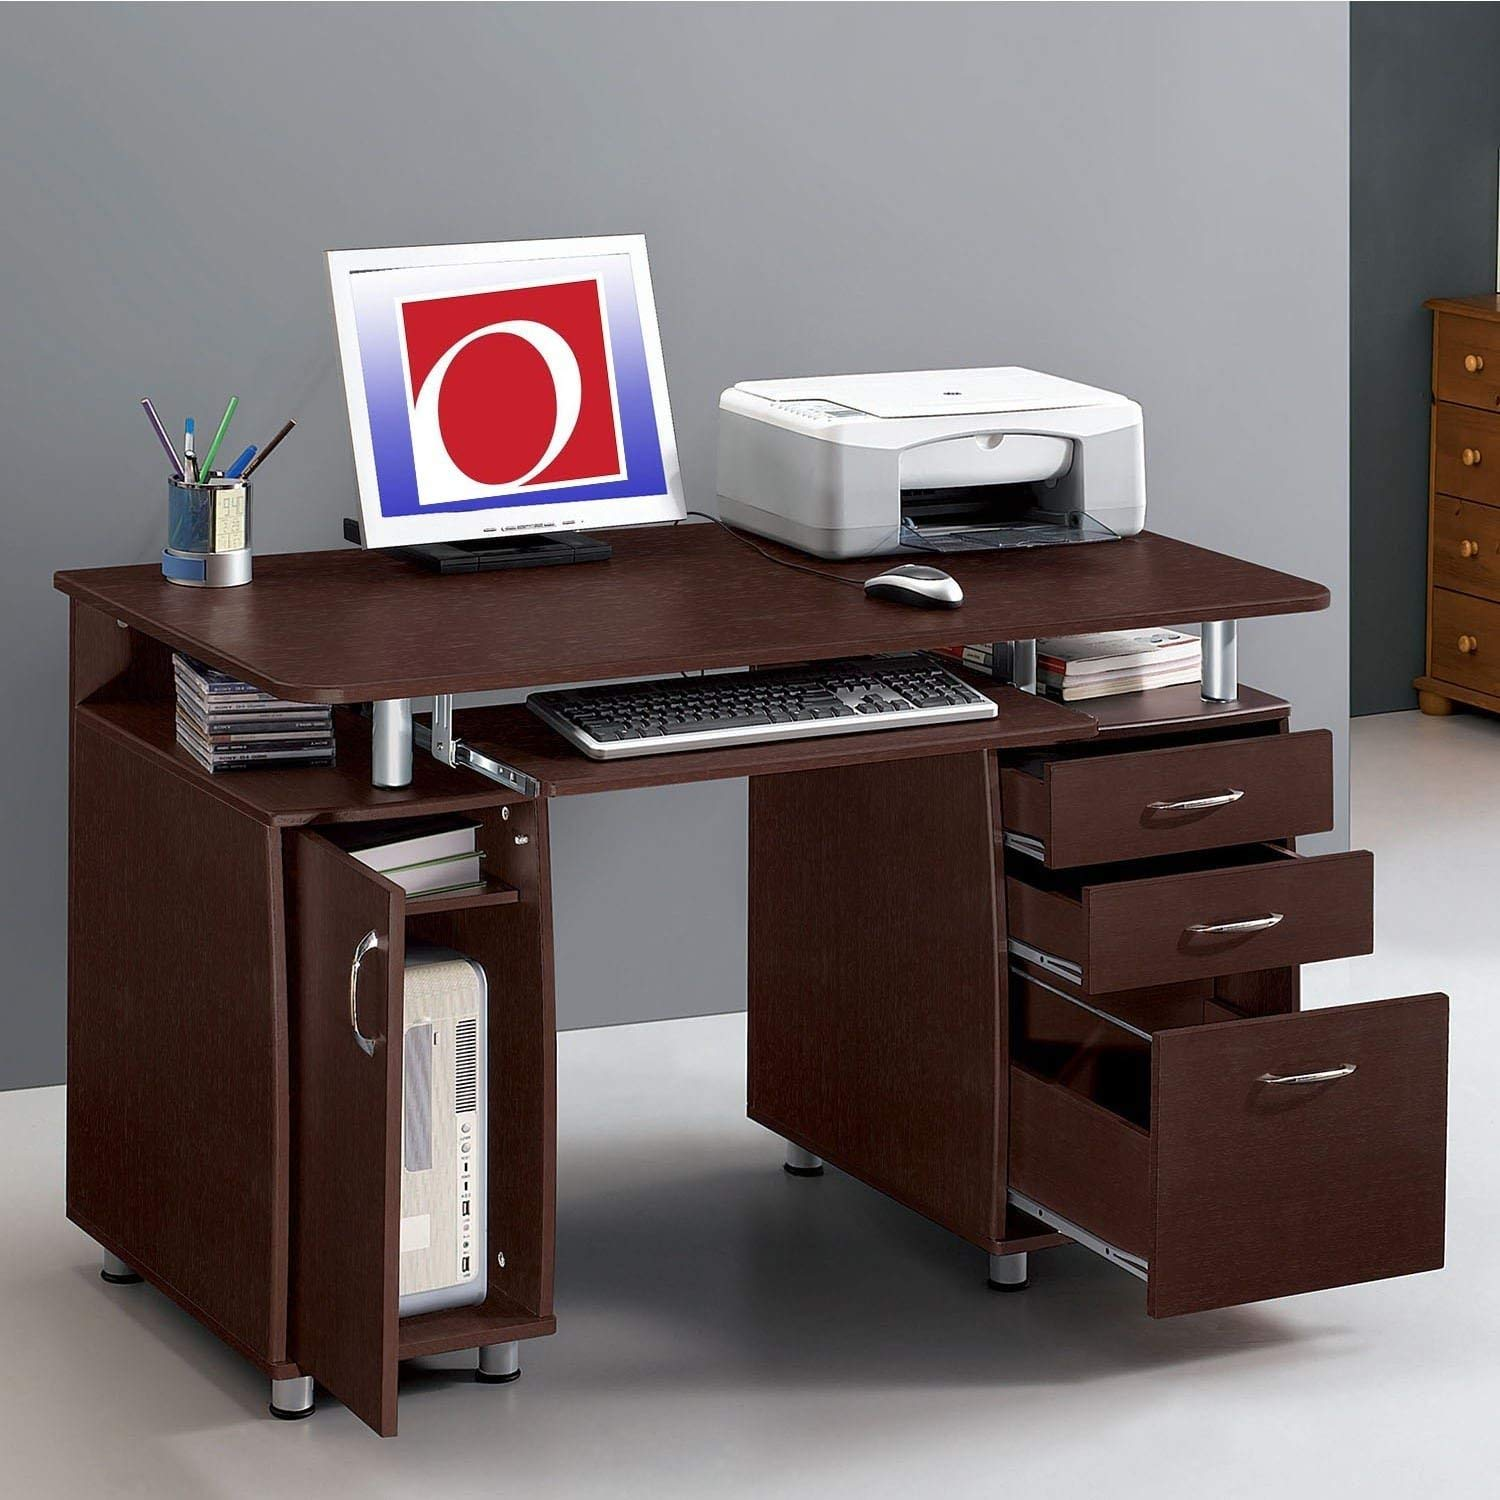 Multifunctional Office Desk with File Cabinet, Ideal for Small Spaces, 3 Drawer Filing Cabinet Built In, Single Door Cabinet Ideal for Computer Tower, Pull-Out Keyboard Tray, Contemporary Brown Finish